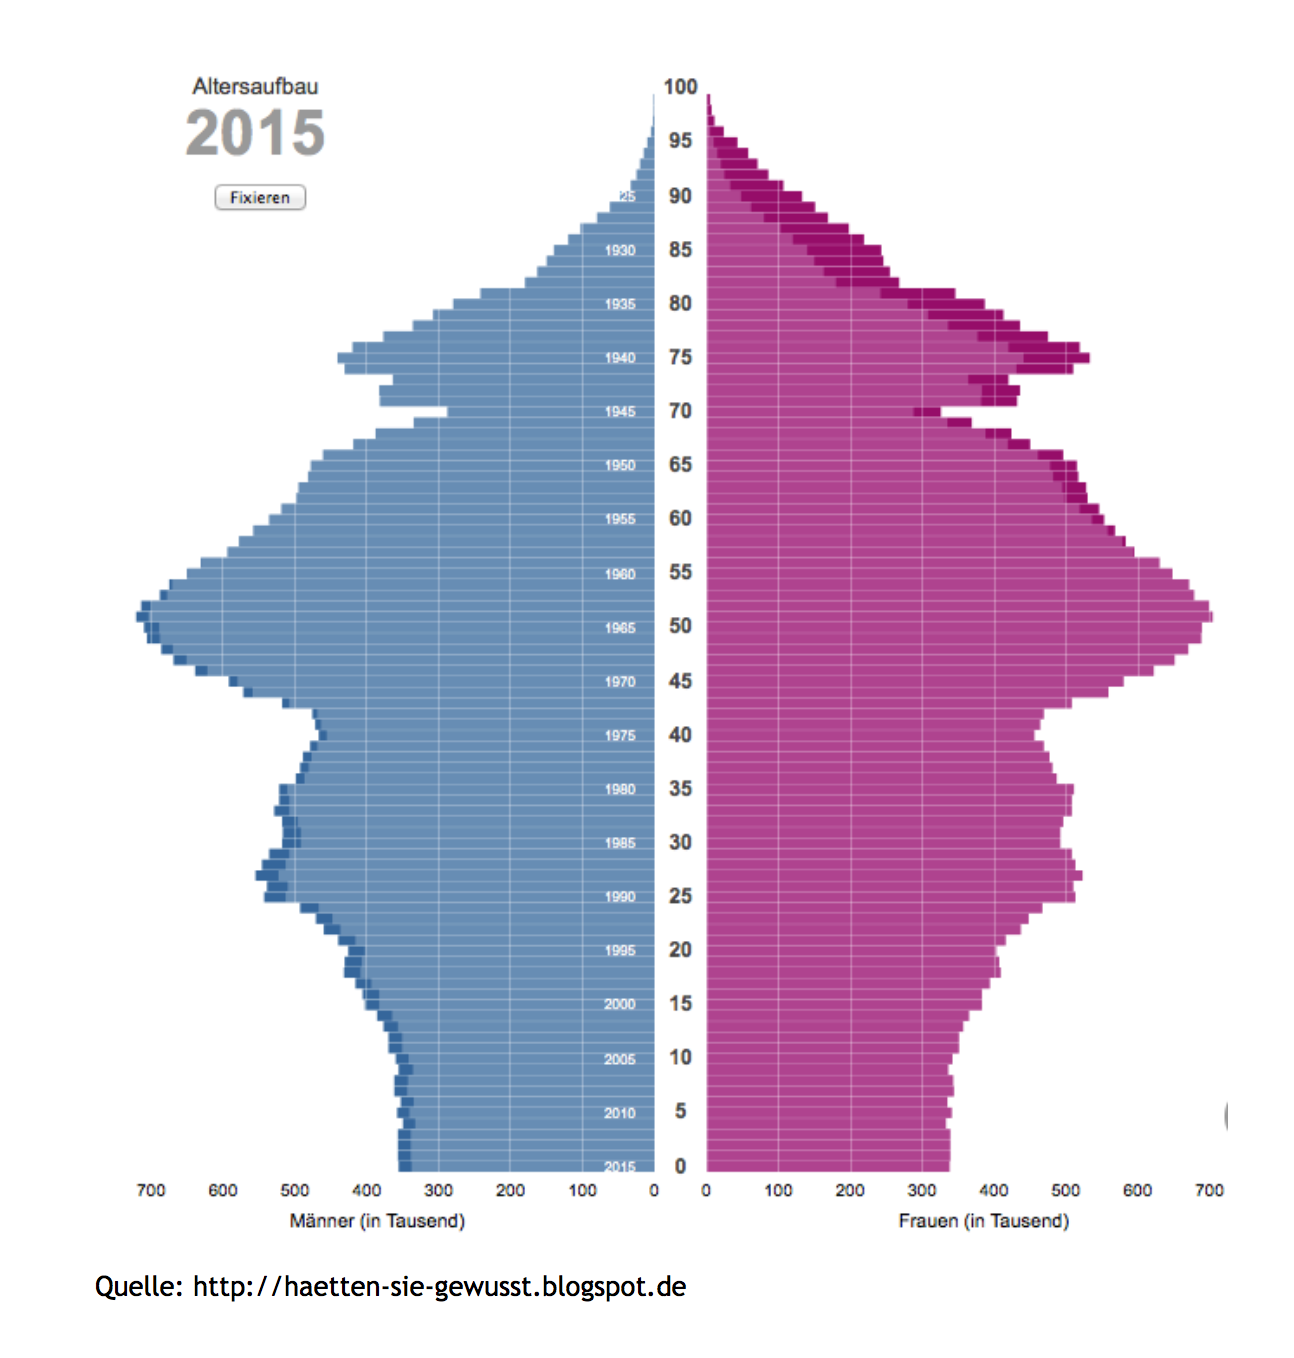 Demography in Germany 2015